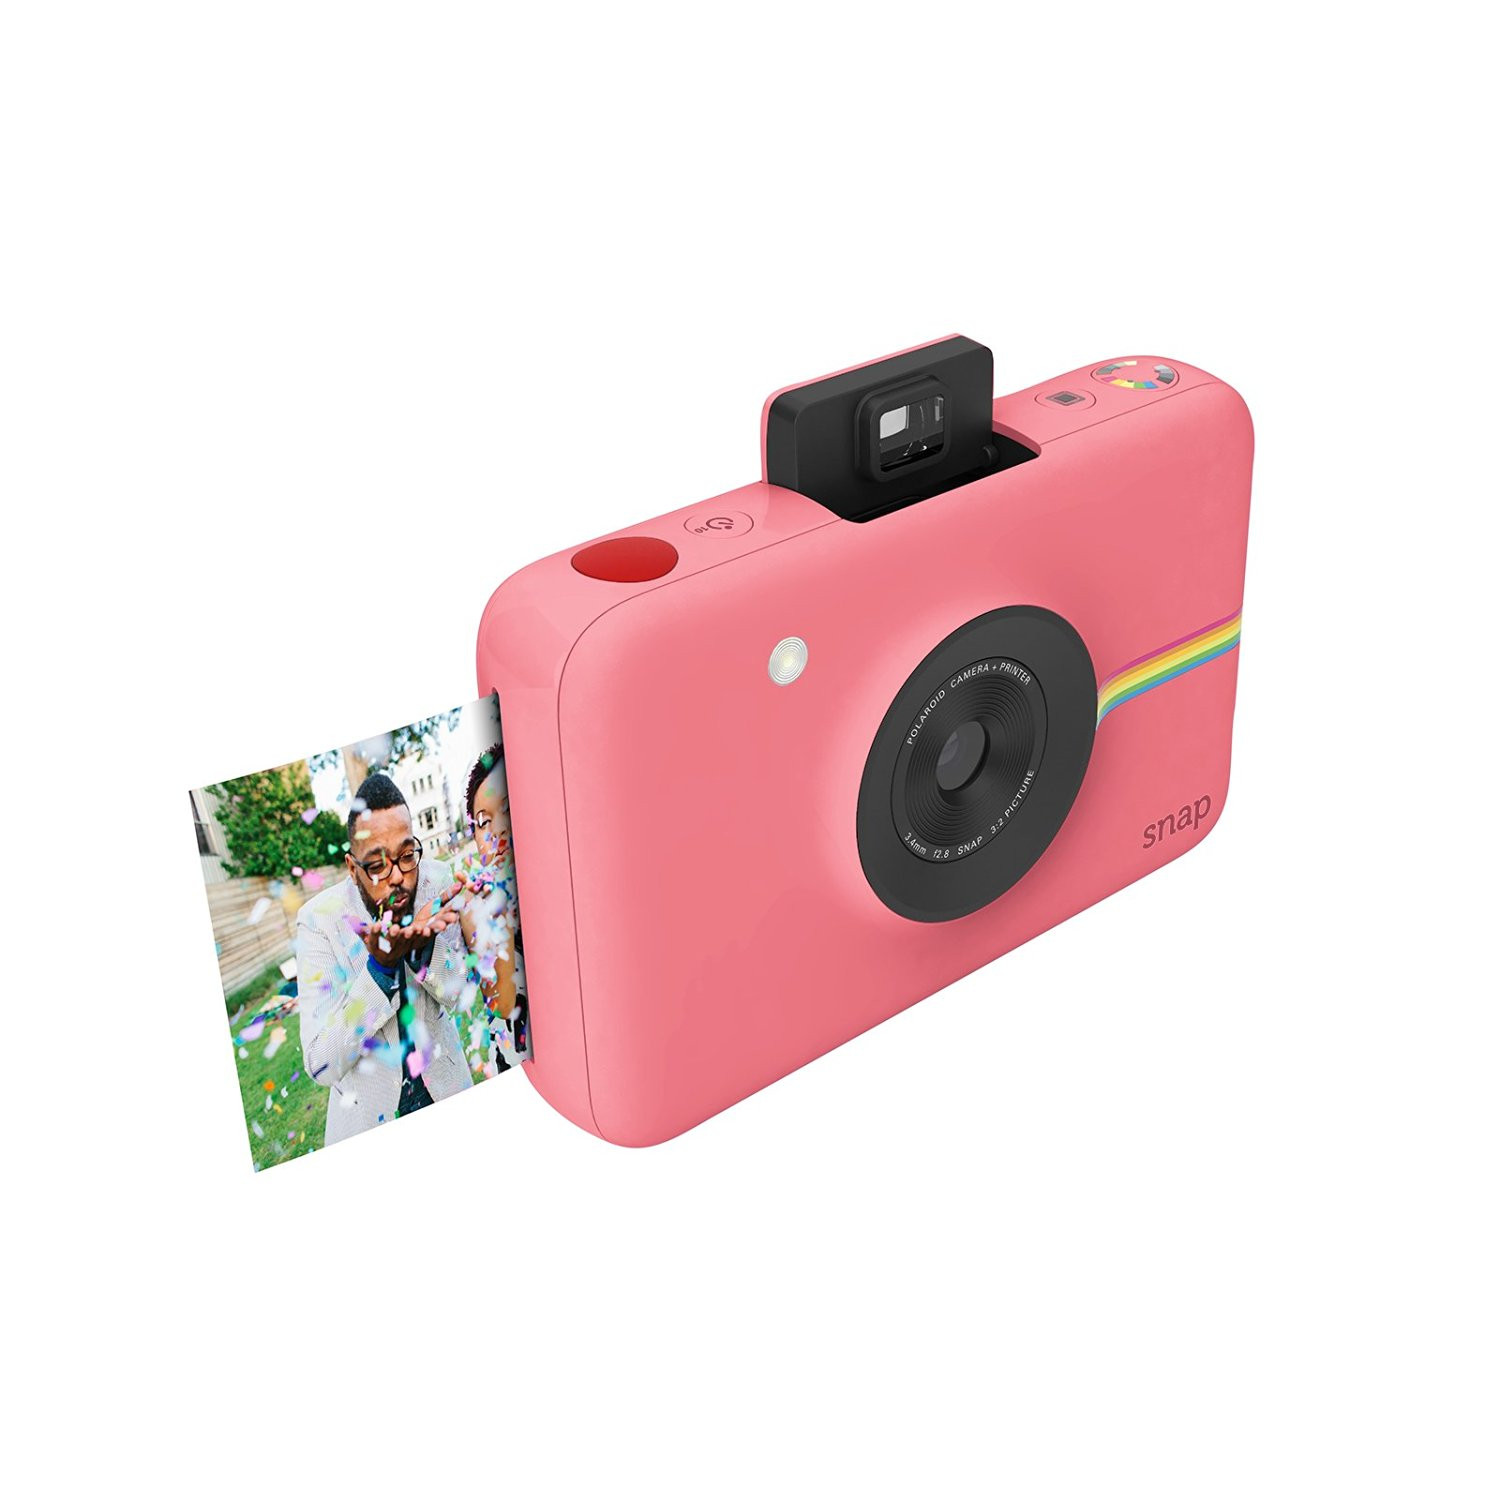 Best tech valentines day gift ideas for her 2017 polaroid snap best tech valentines day gift ideas for her 2017 polaroid snap instant digital camera negle Choice Image